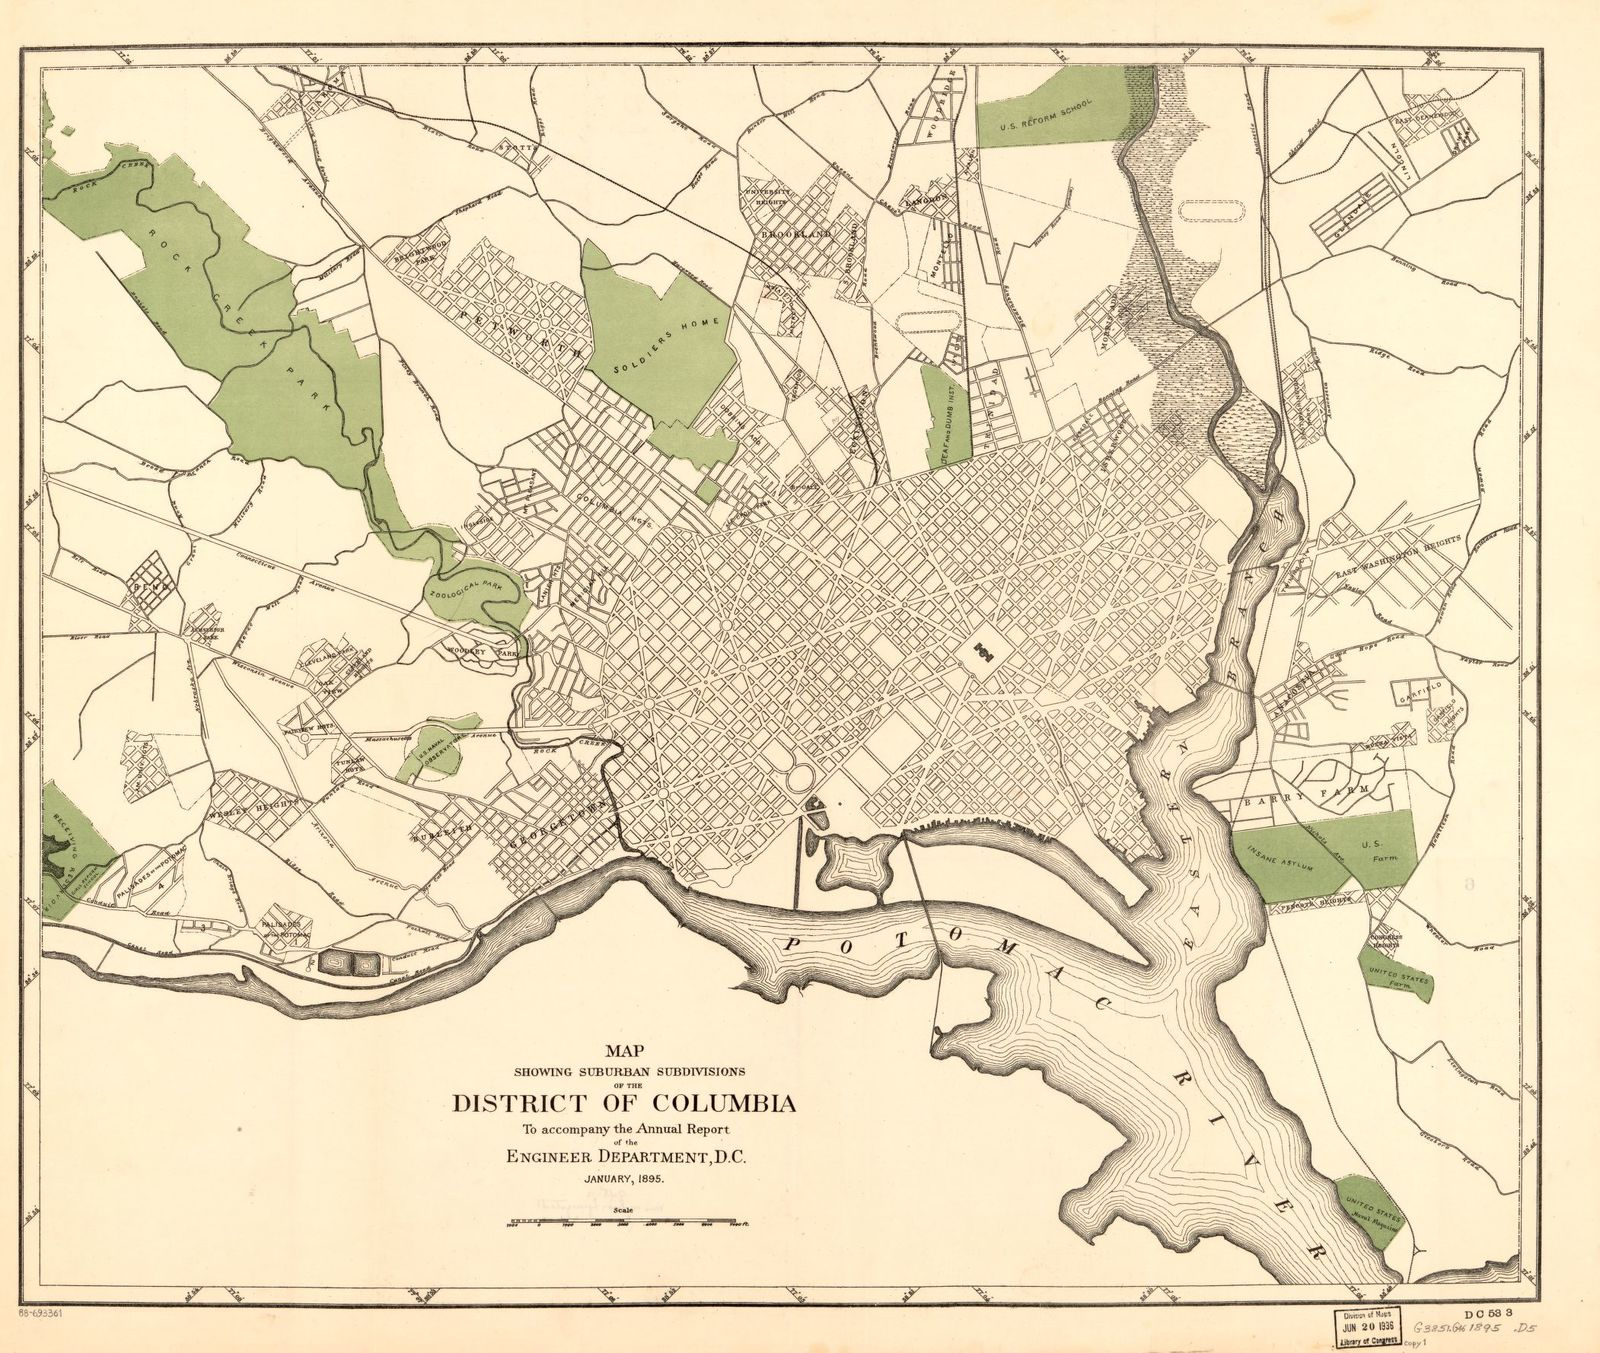 Map showing suburban subdivisions of the District of Columbia / | PICRYL